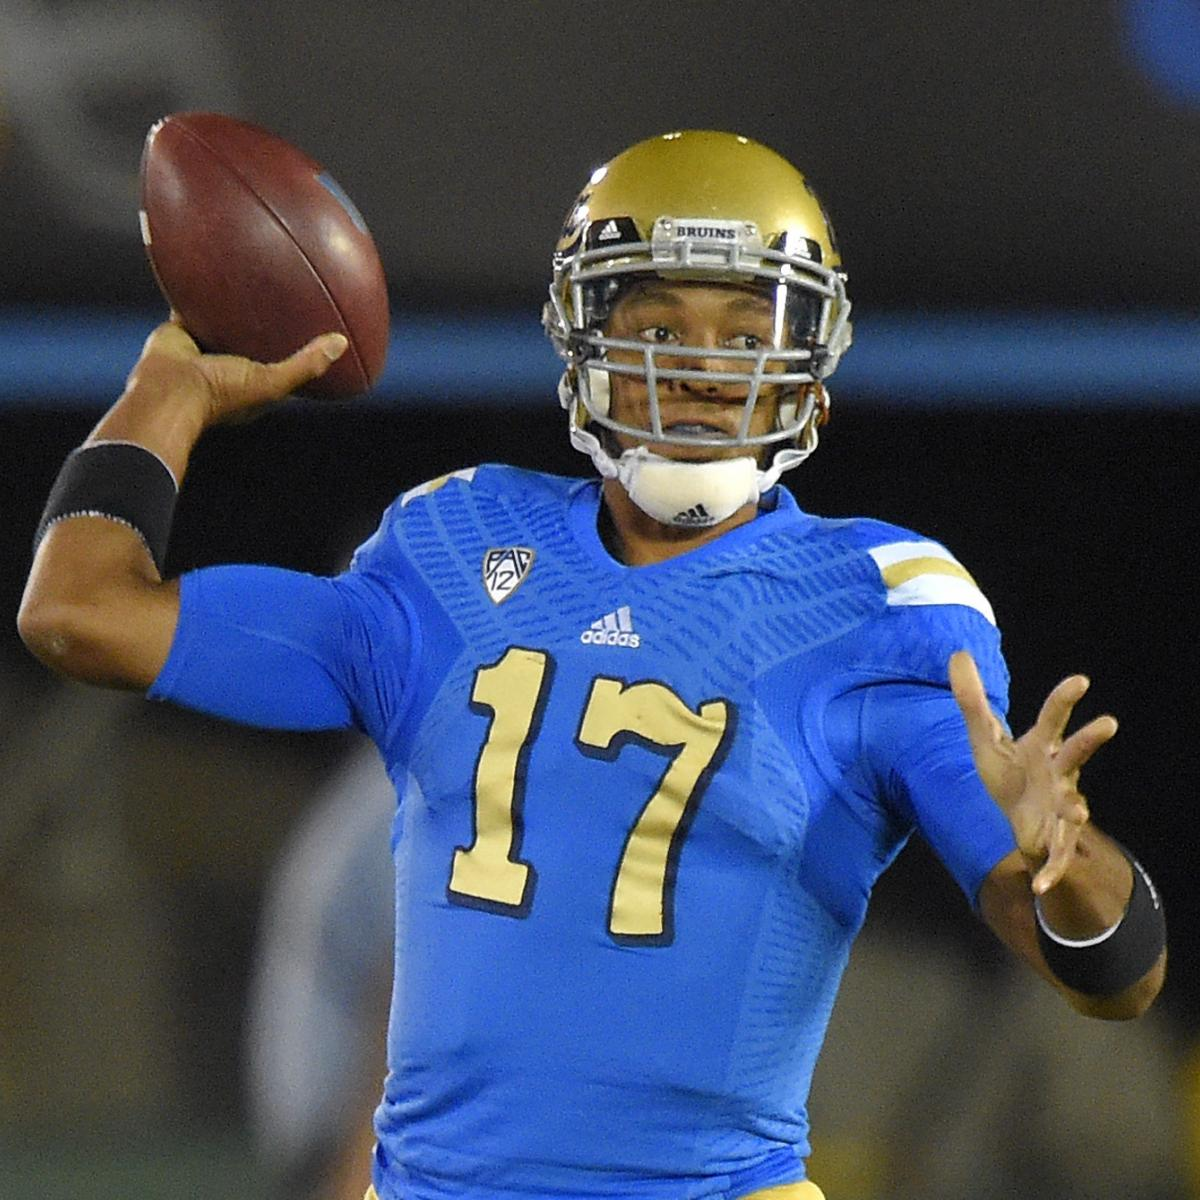 Alamo Bowl Betting: UCLA Bruins vs. Kansas State Wildcats ...Bruins Bleacher Report